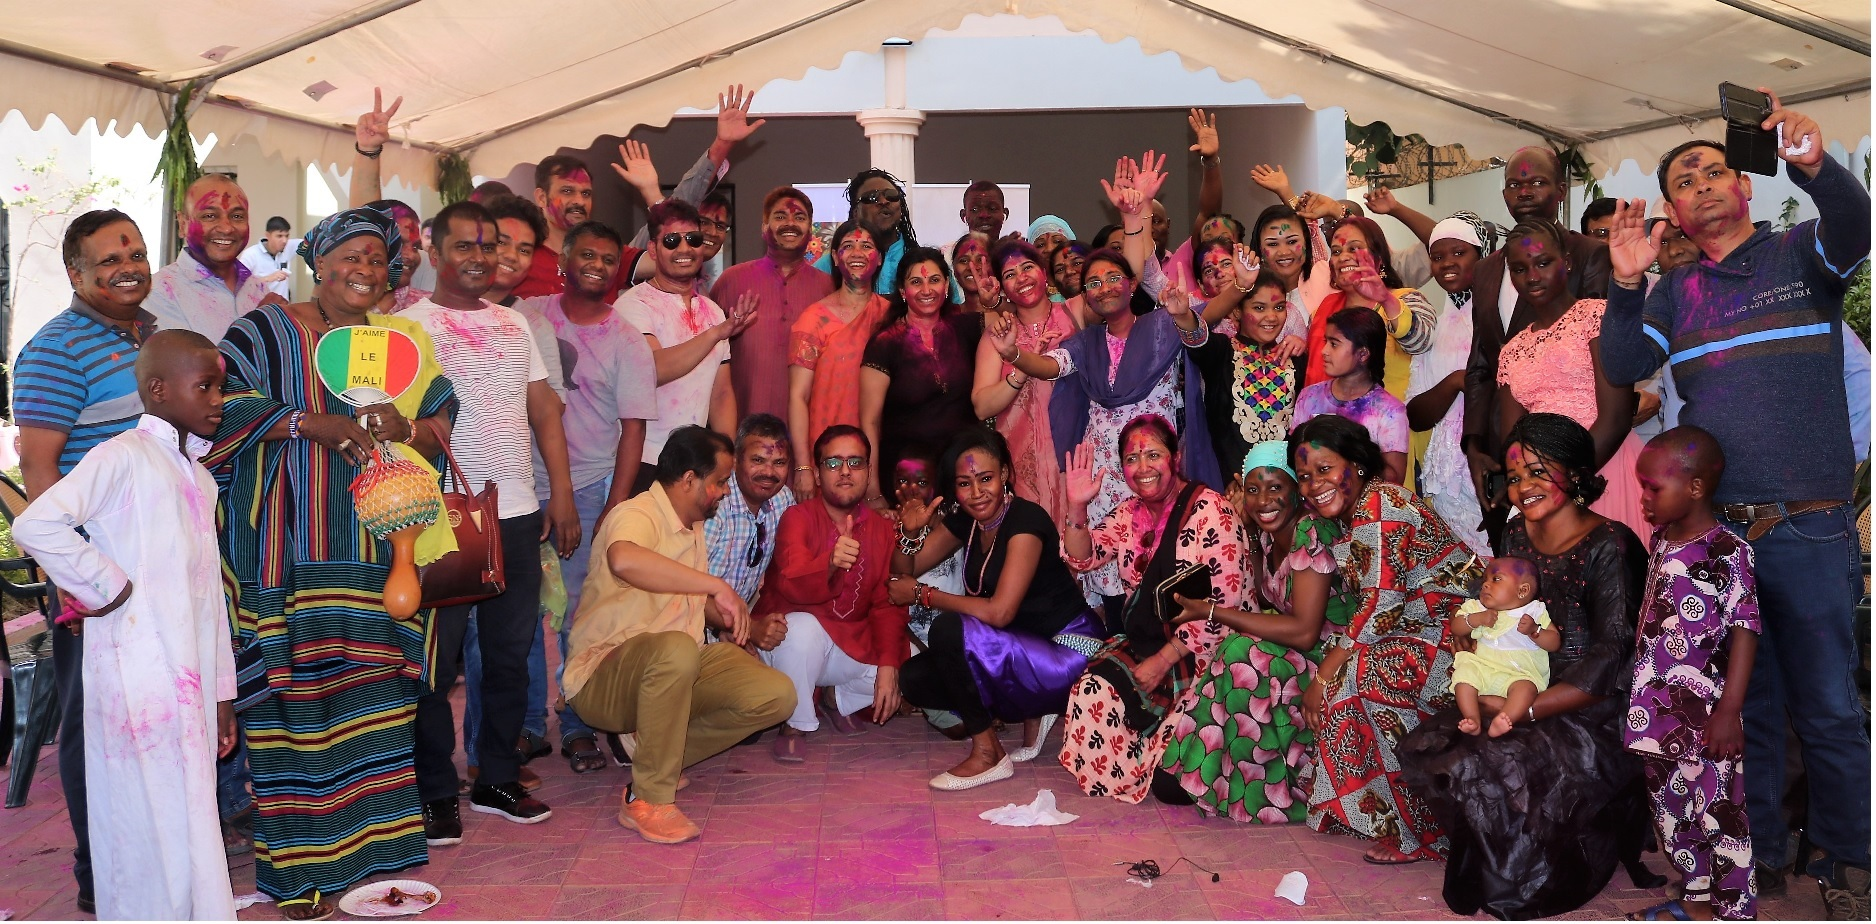 The Indian Diaspora in Mali welcomes cross section of Malian society representing Government, Music, Arts, Culture, Business, Indophiles etc. for a memorable India-Mali joint Holi celebration.